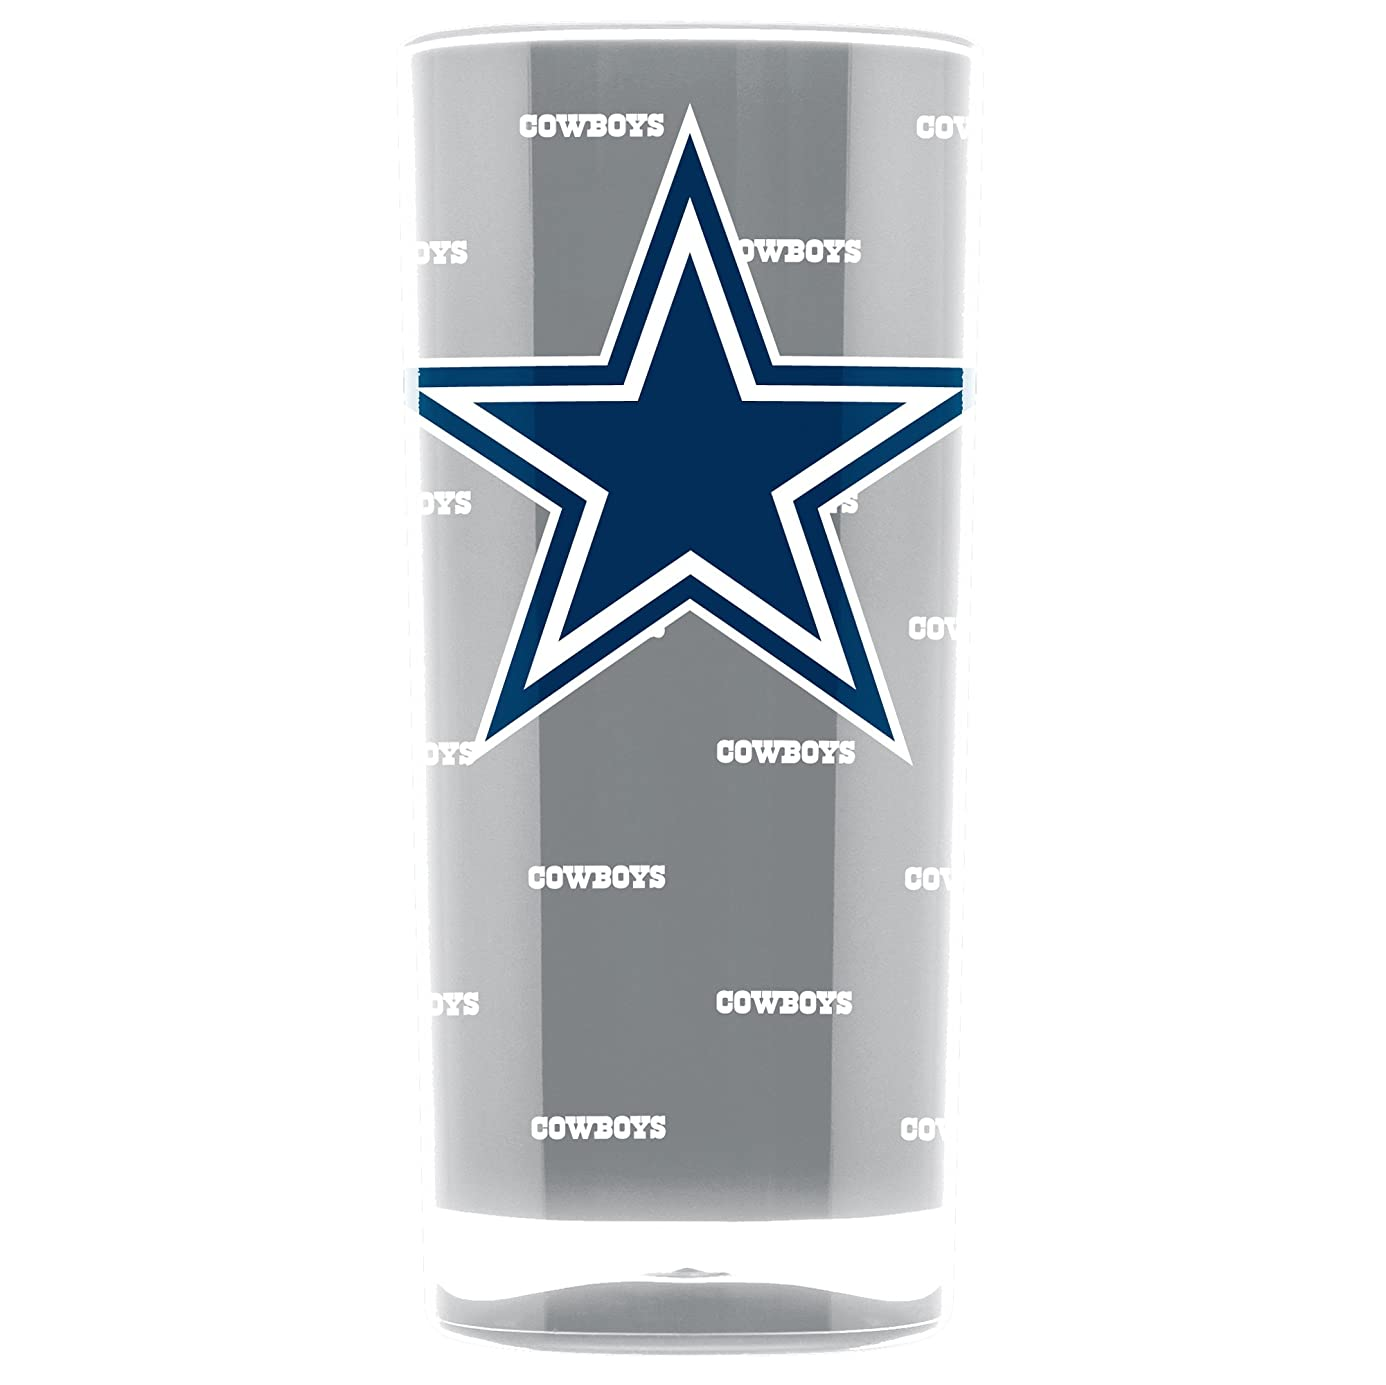 Duck House NFL Unisex Insulated Acrylic Square Tumbler